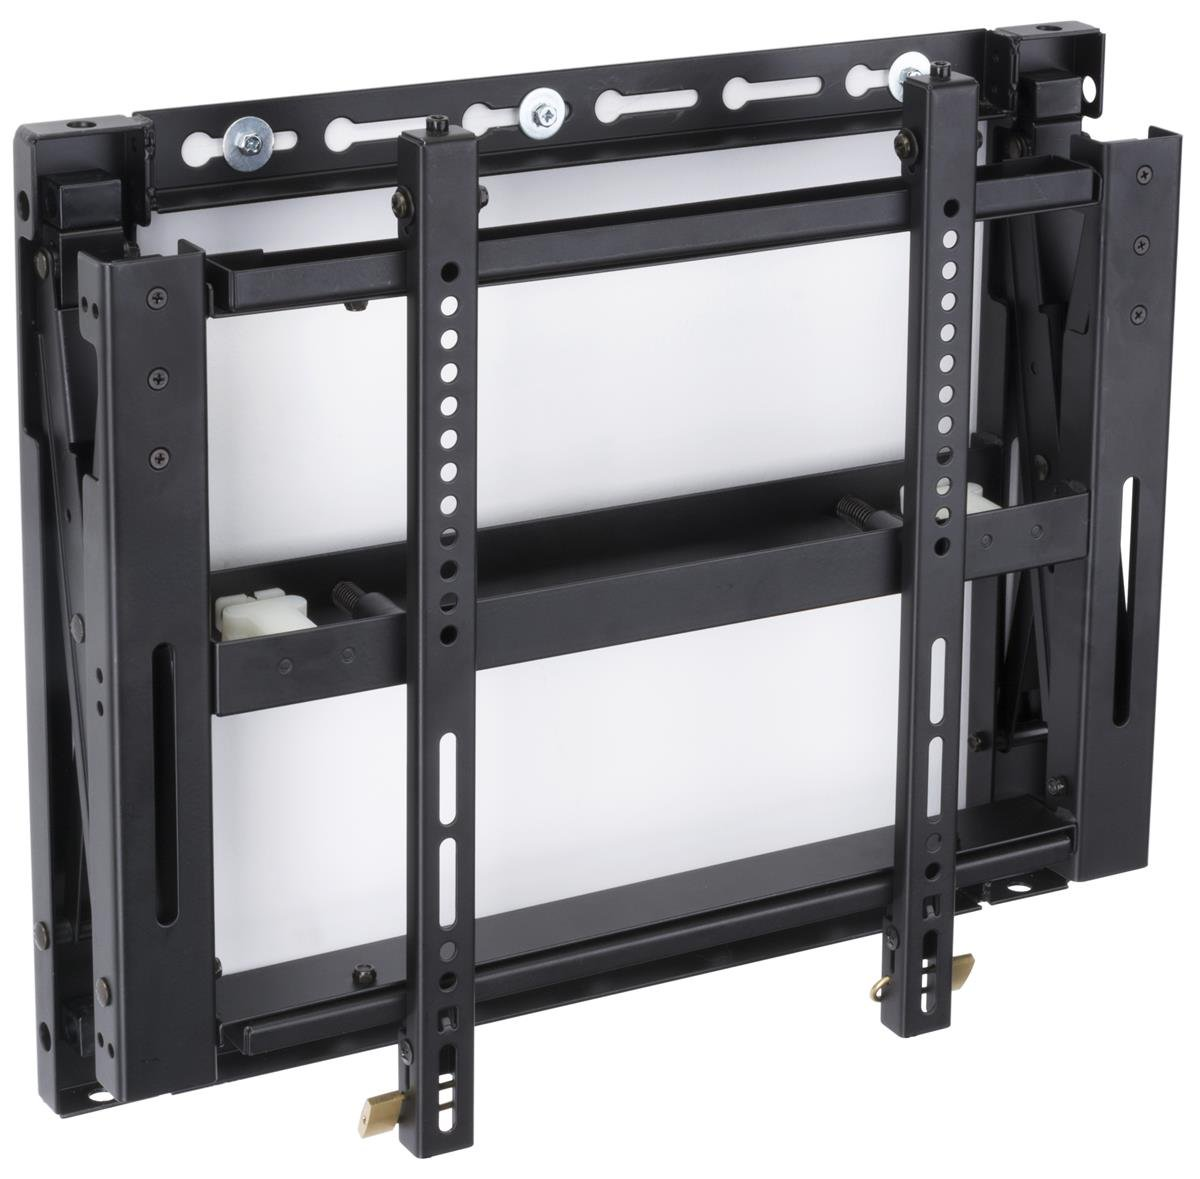 Amazon Com Displays2go Lvw4055bk Extendable Tv Wall Mount For 42 55